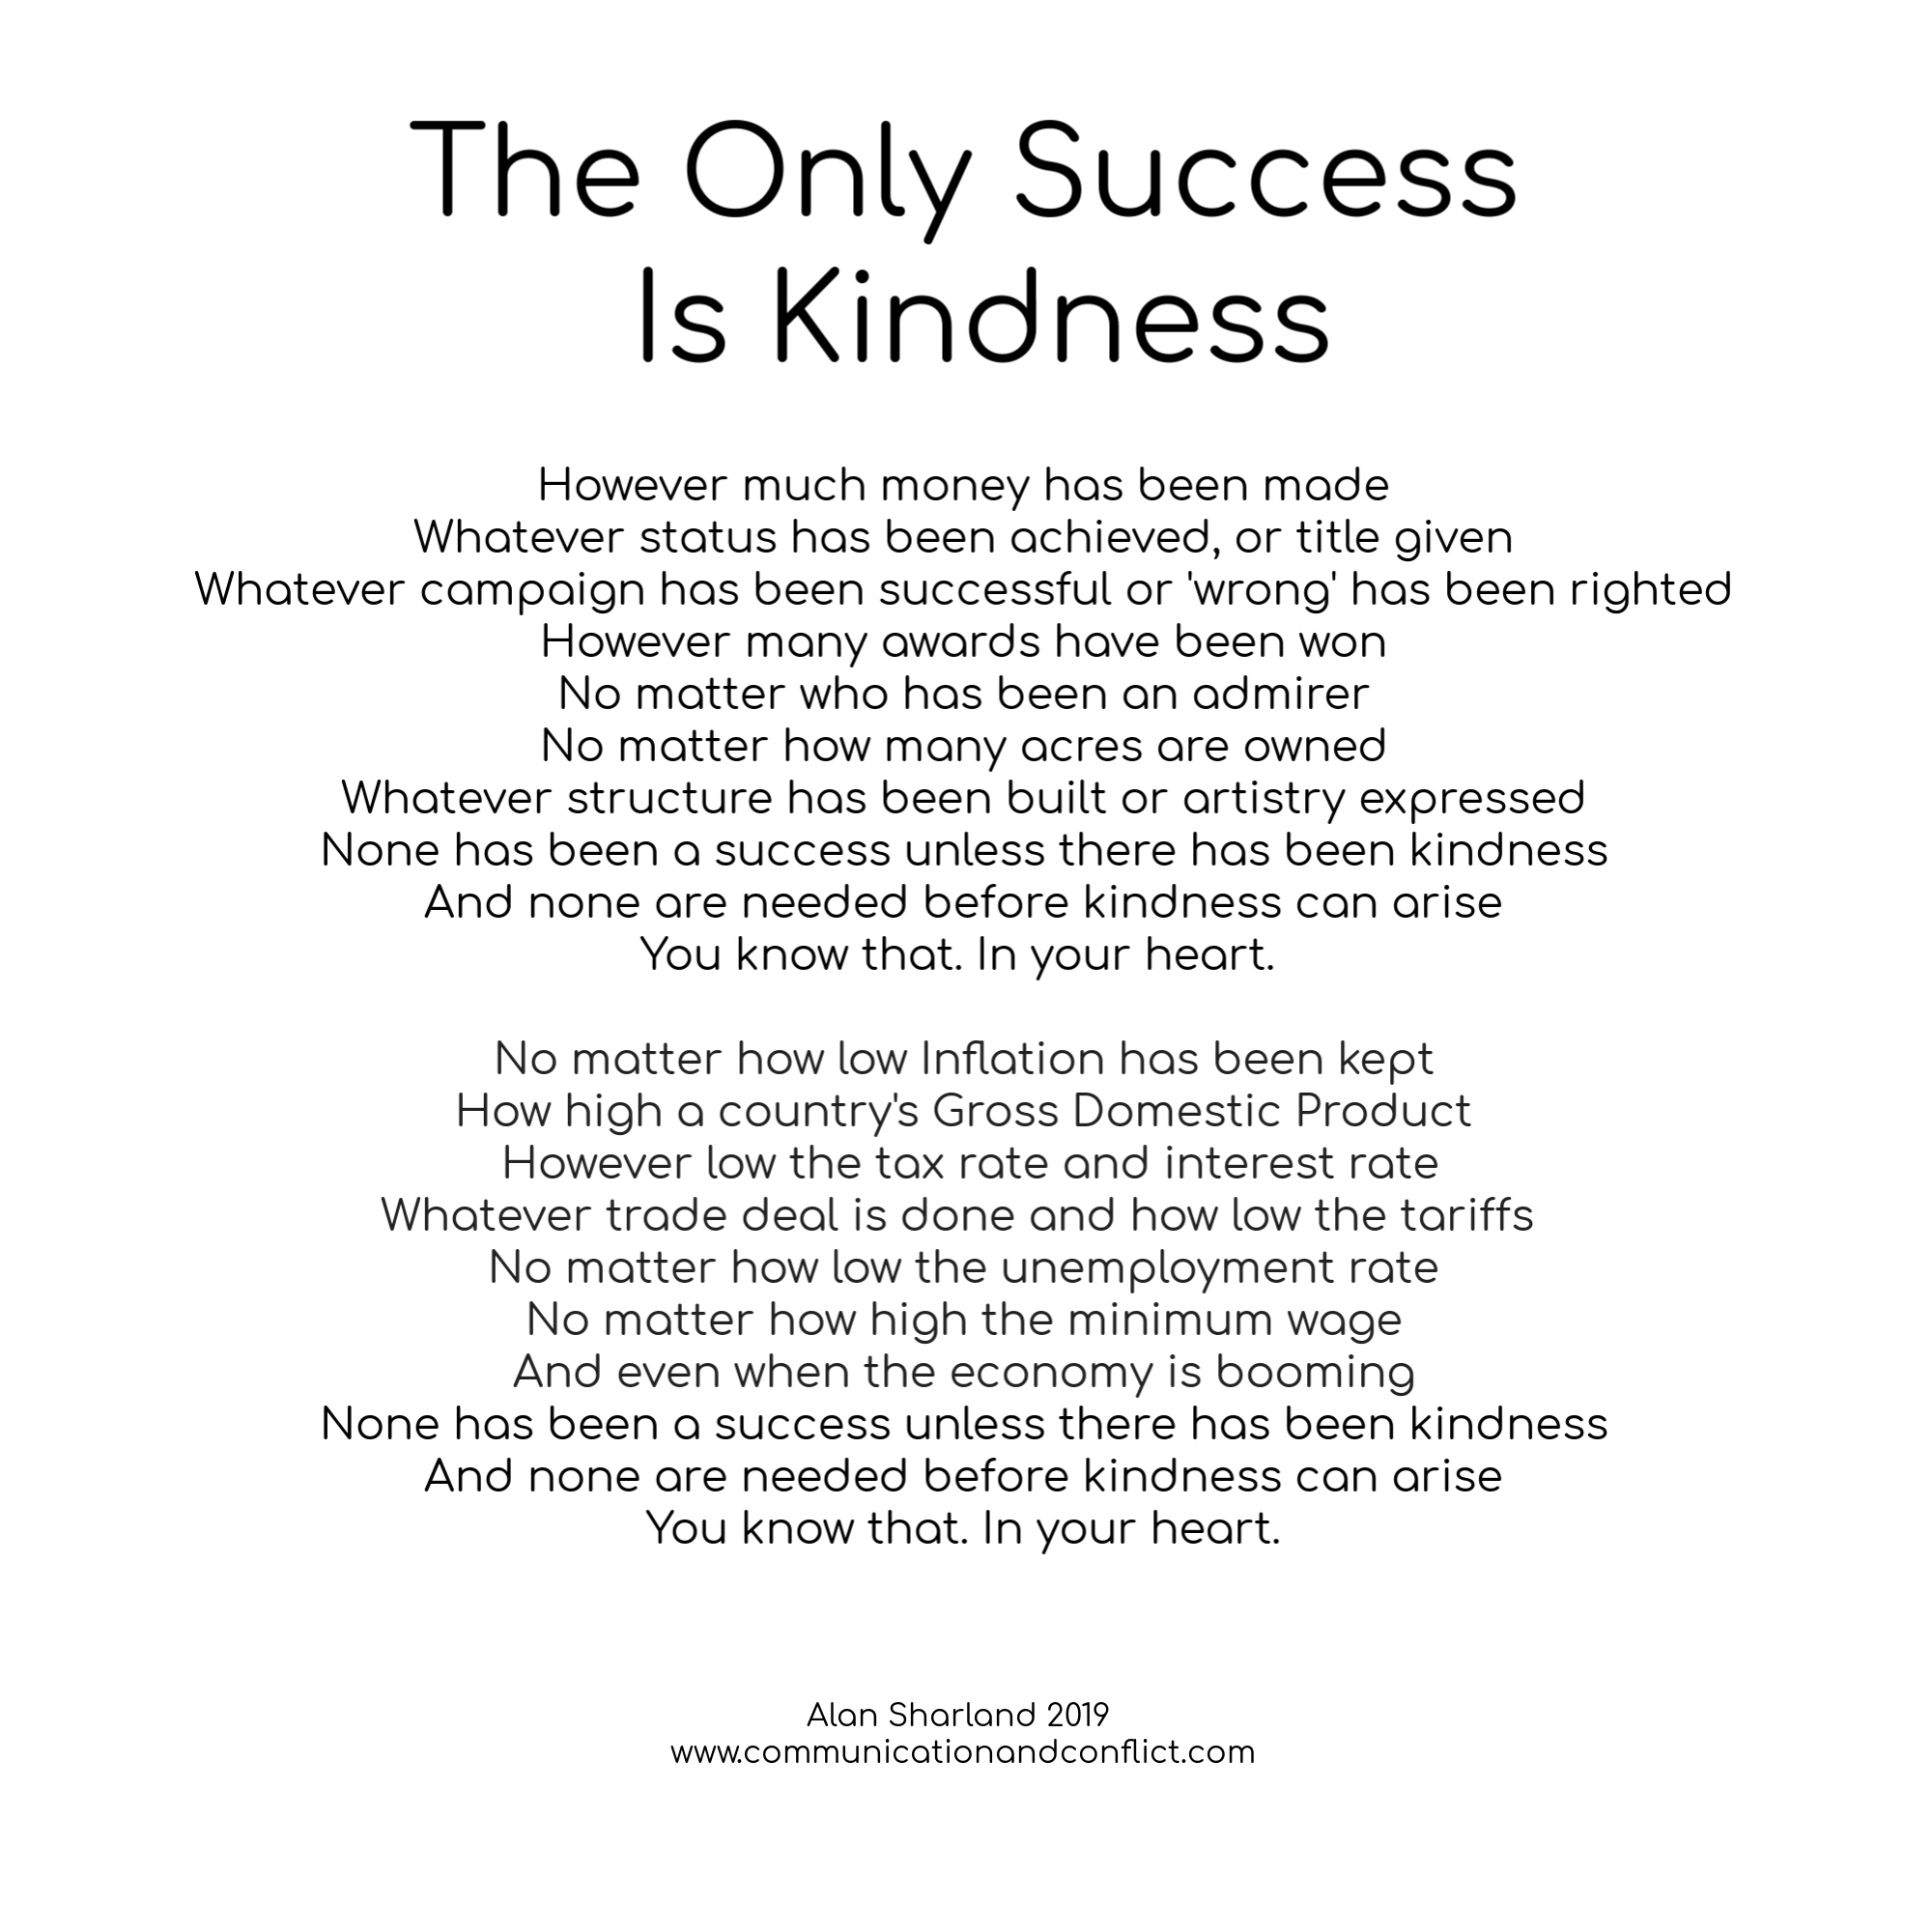 Kindness - communicationandconflict.com